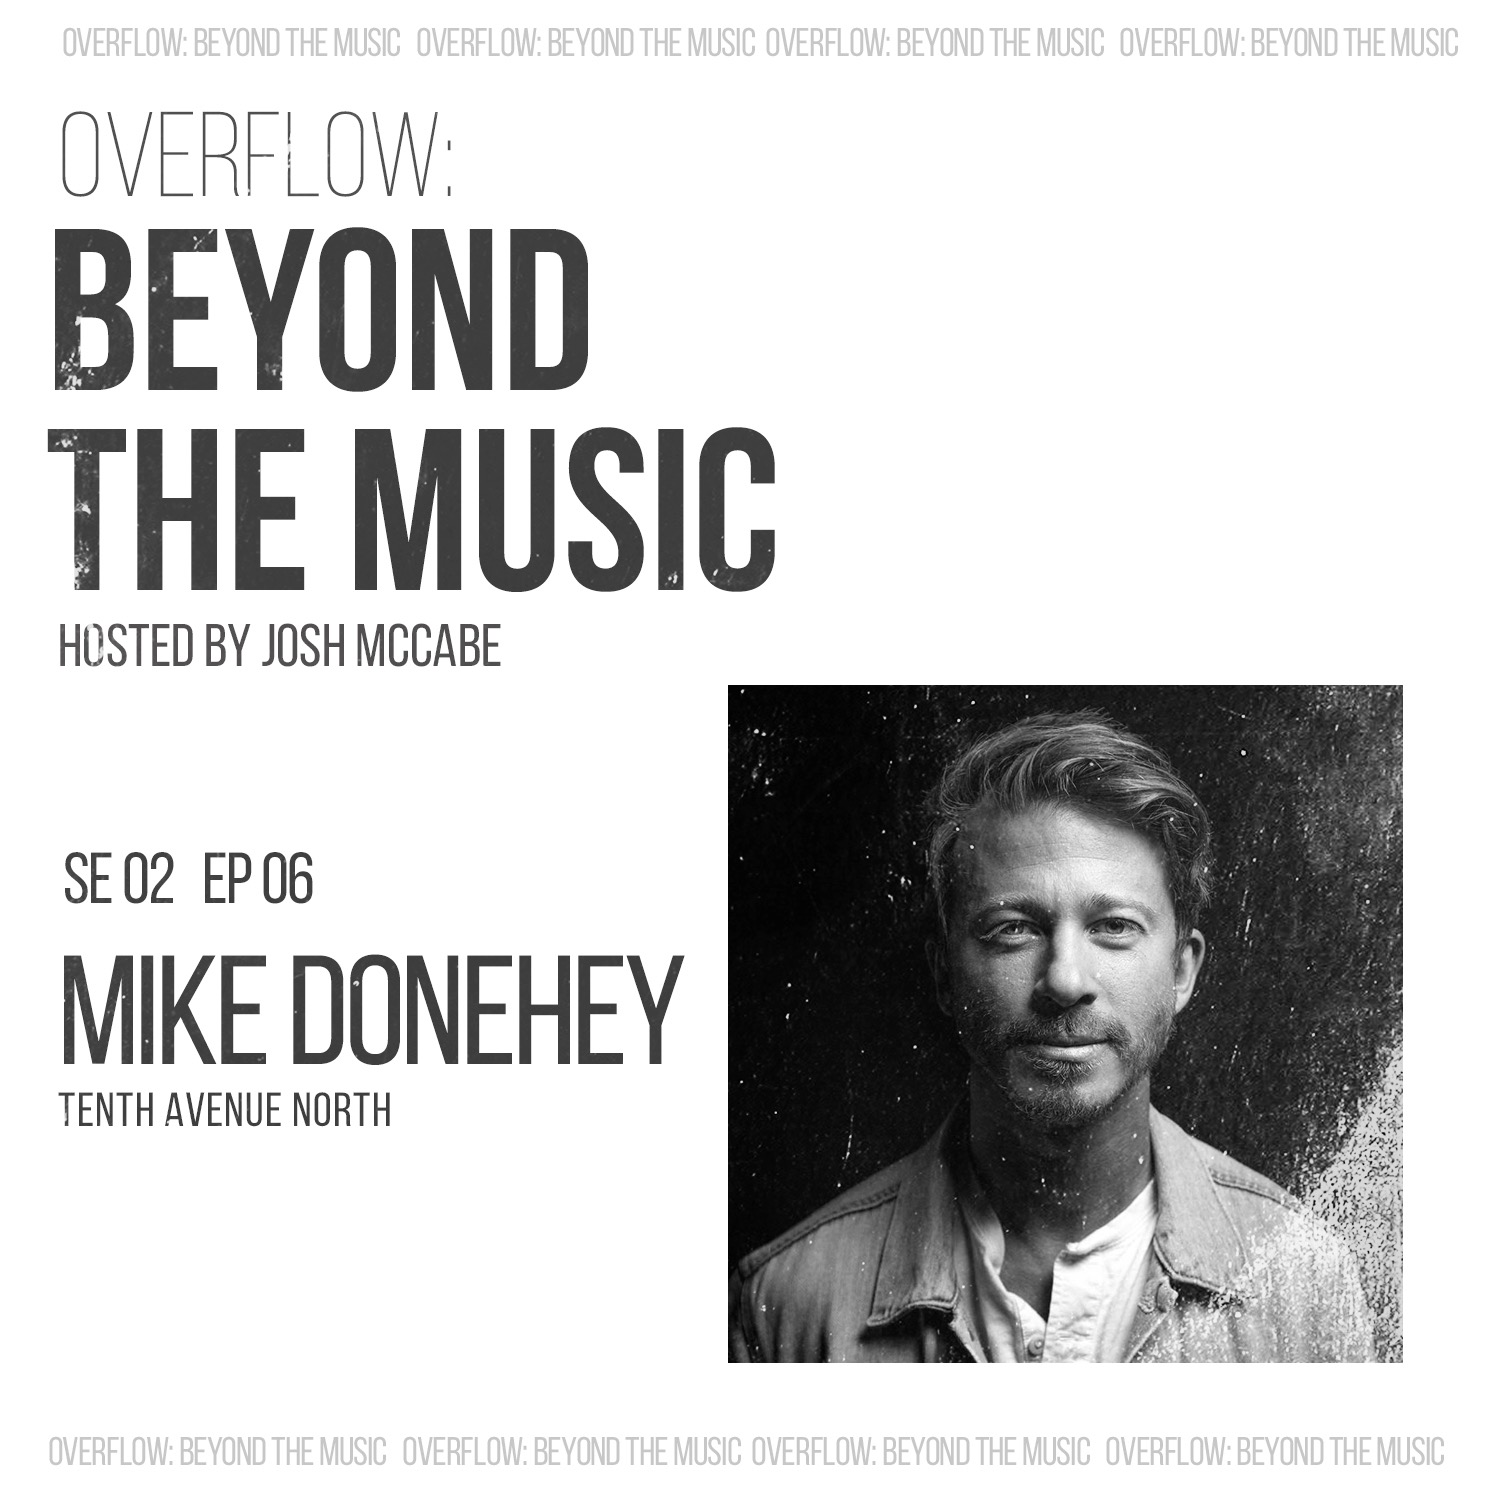 No Shame: Mike Donehey of Tenth Avenue North